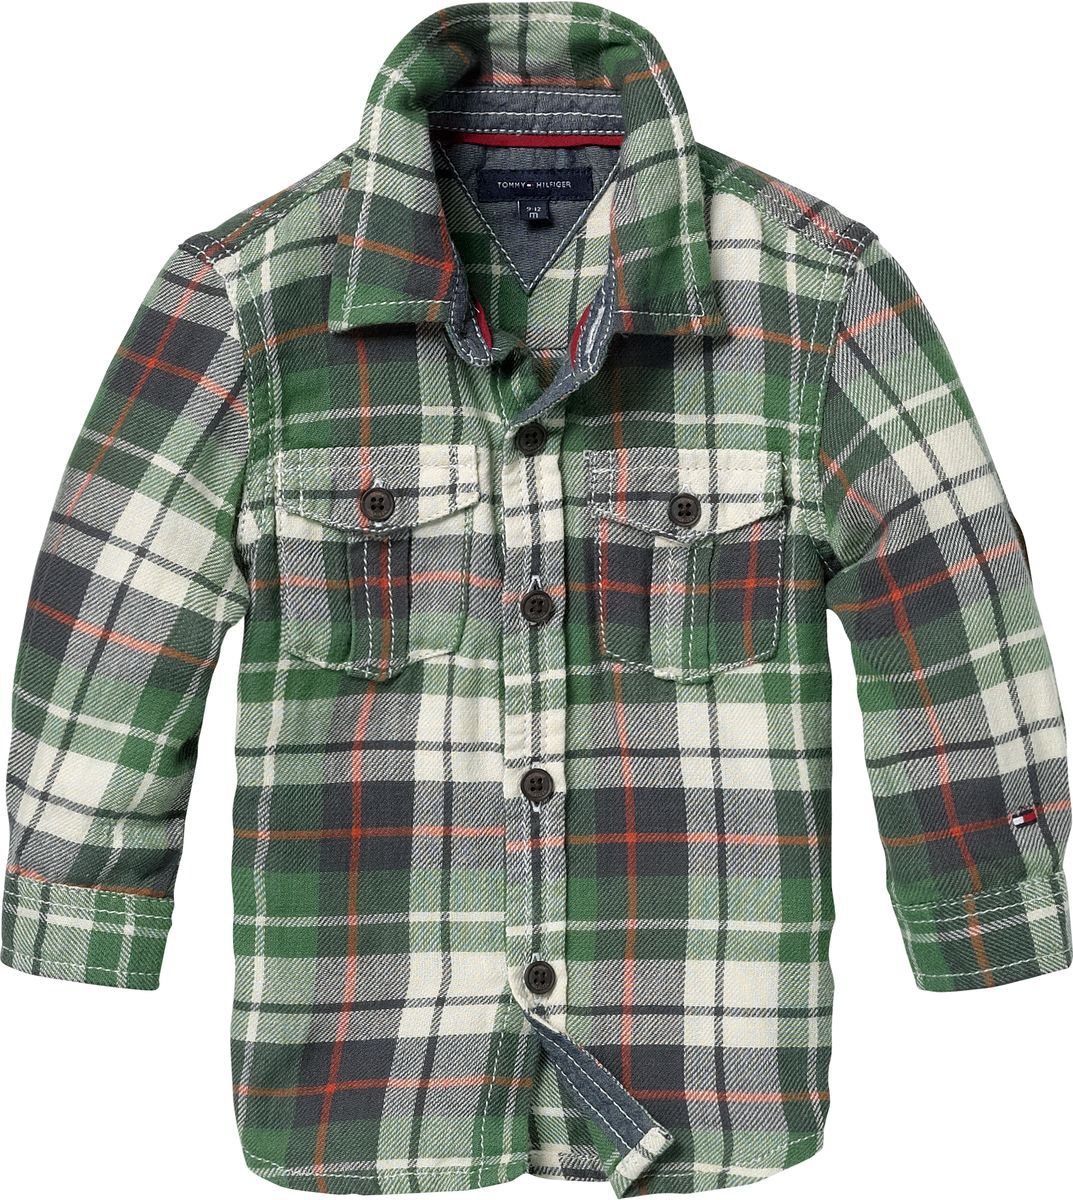 Toddler boy`s check shirt.